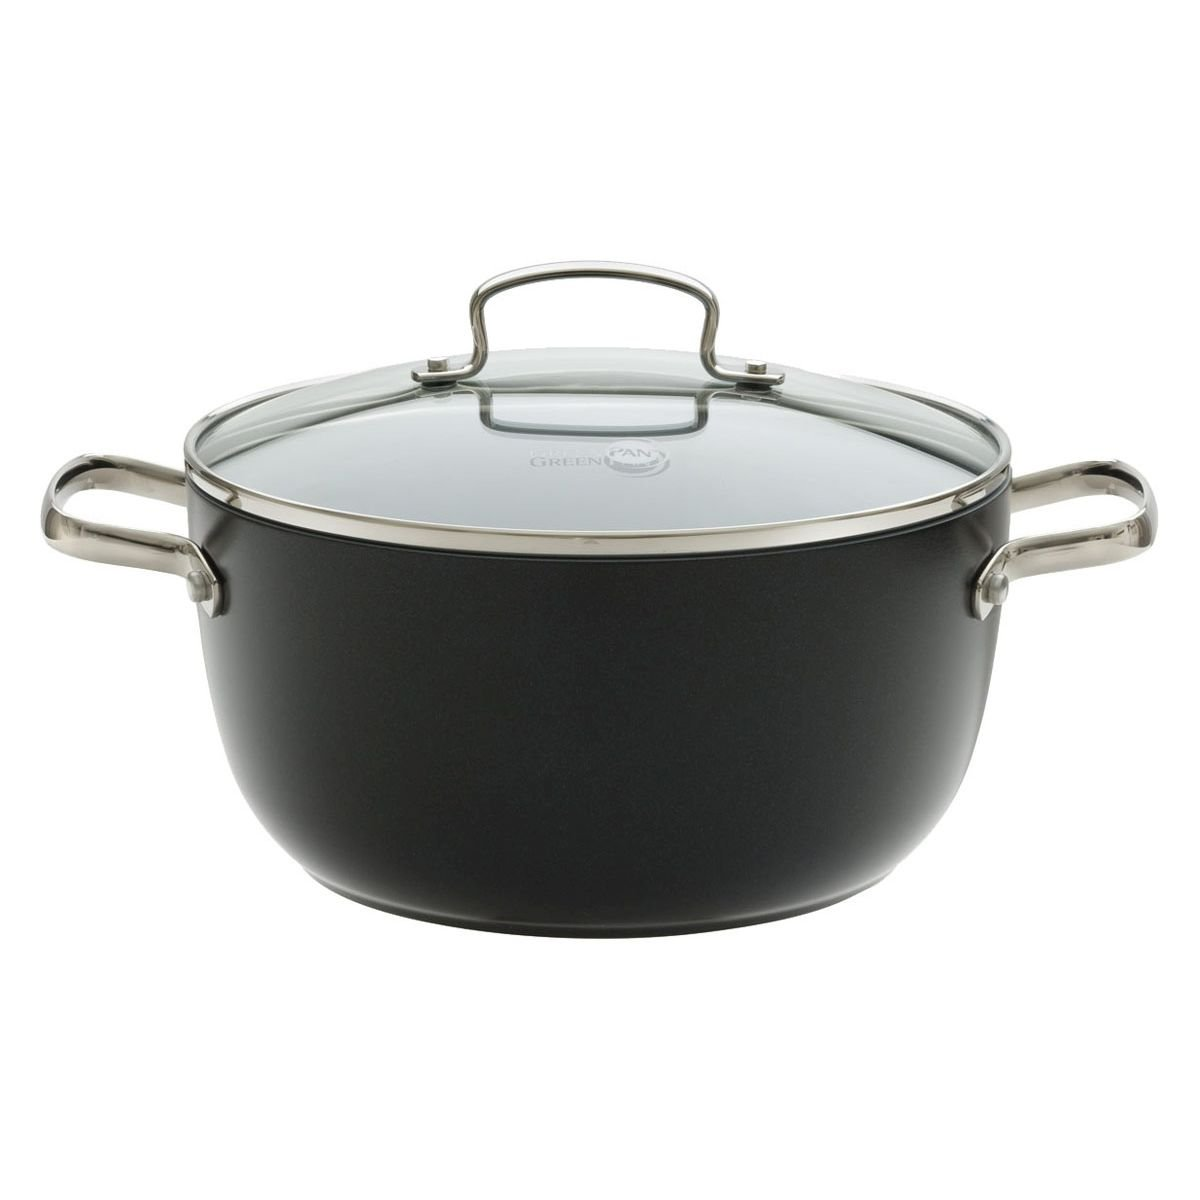 GREENPAN 1405505 24 cm Non-Stick Casserole with Glass Lid